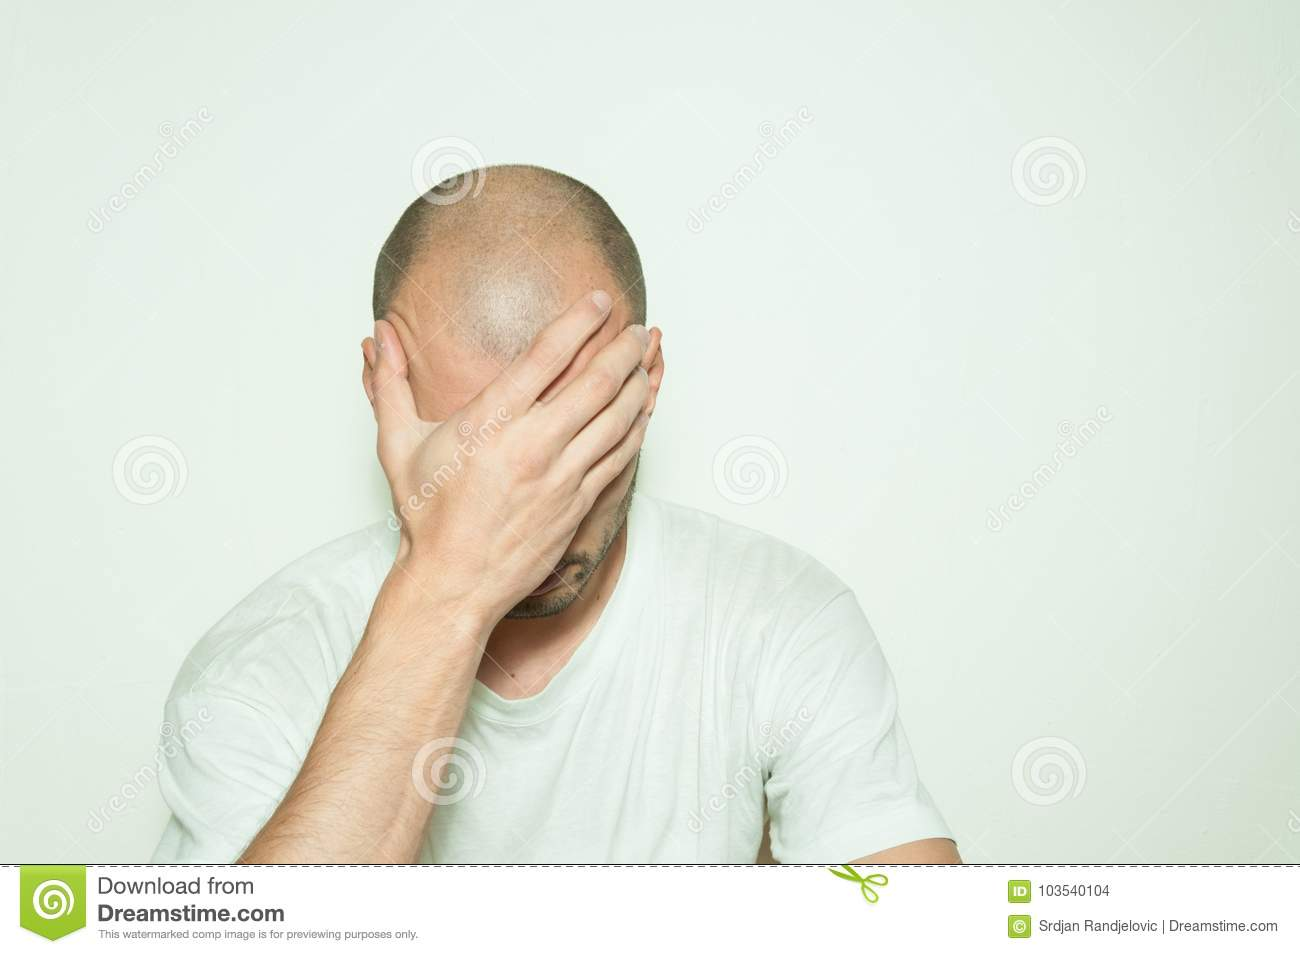 Young depressed man suffering from anxiety and feeling miserable cover his face with his hands and leaning on the white wall.